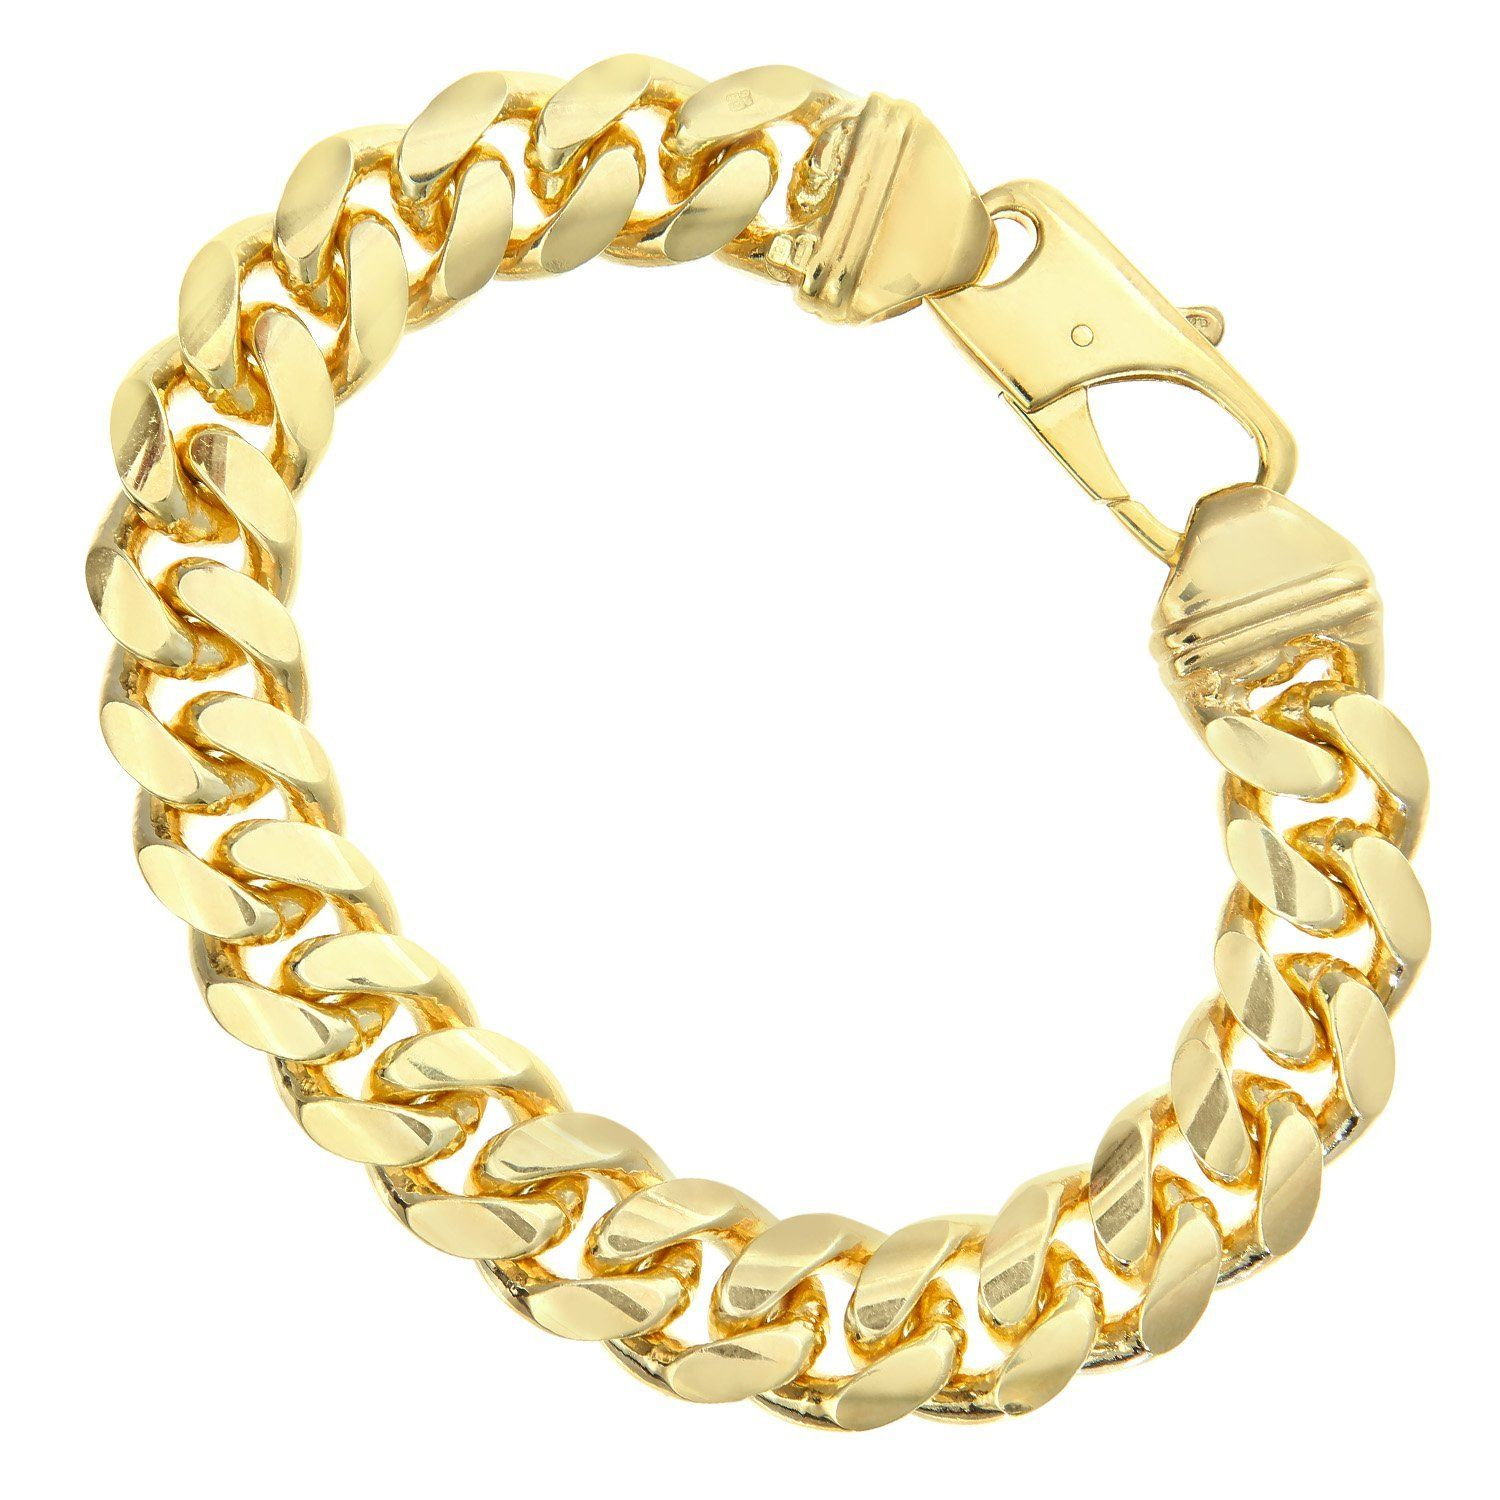 Citerna Gold Plated Silver Men's Solid Curb Chain Necklace SAC200 XdjMI2tT